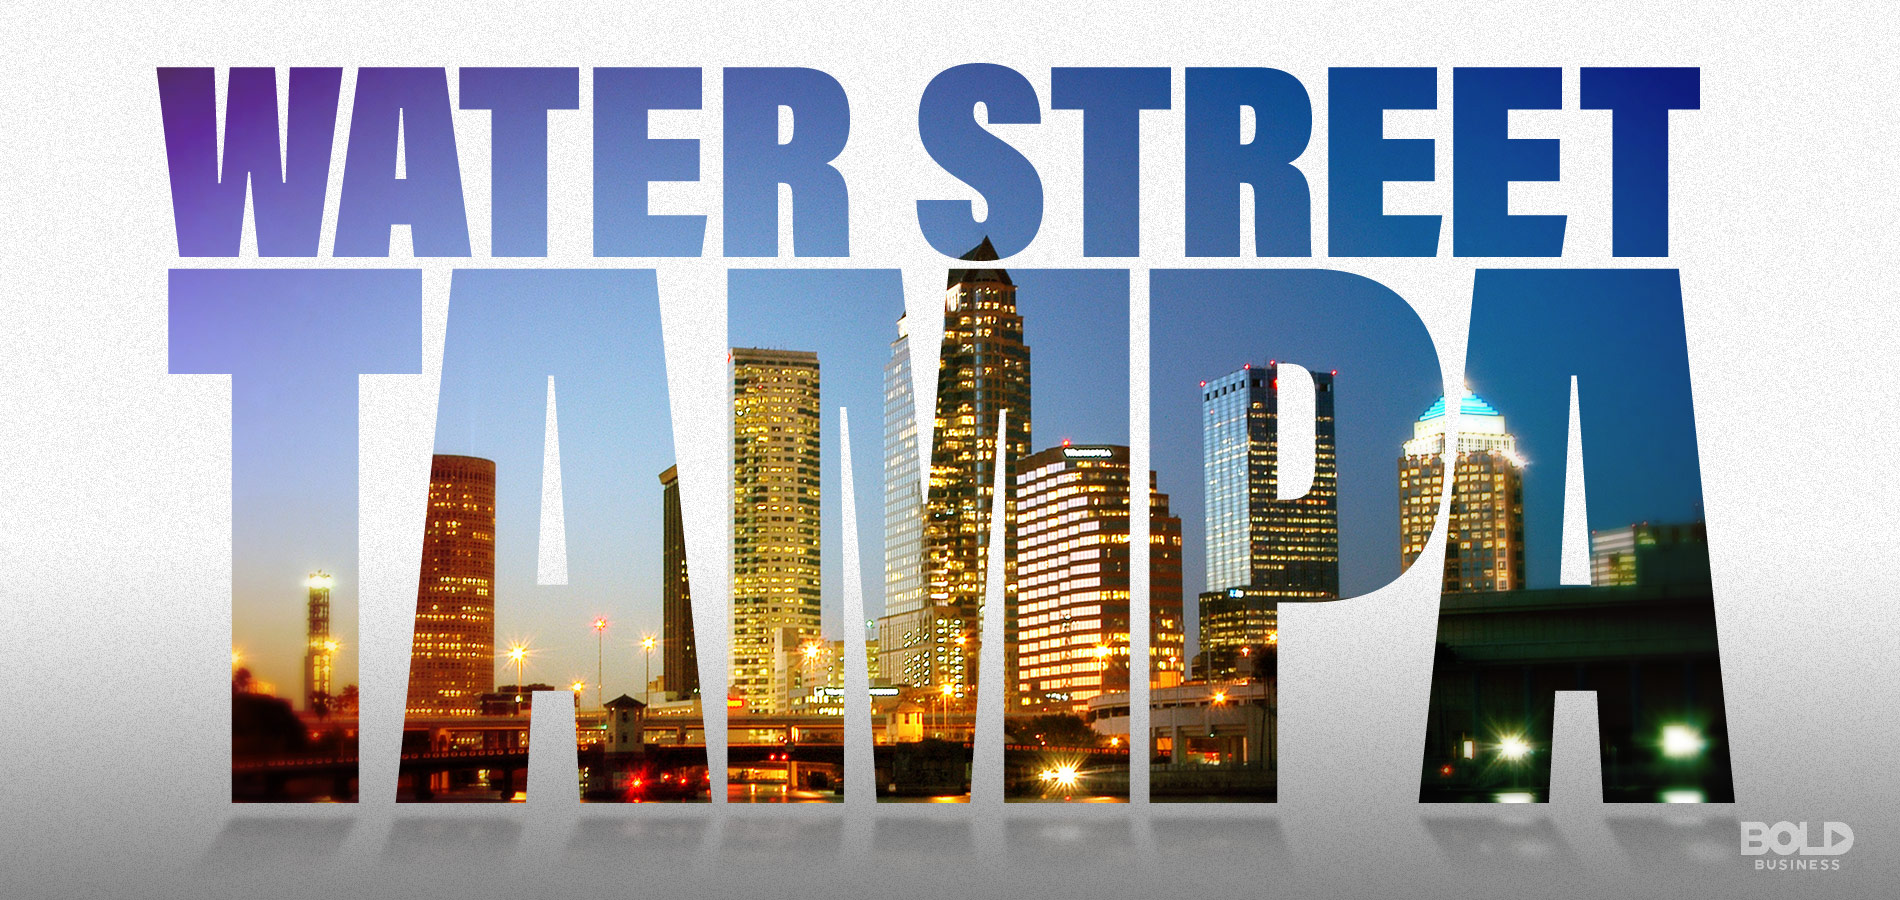 Water Street Tampa development is redefining the city.